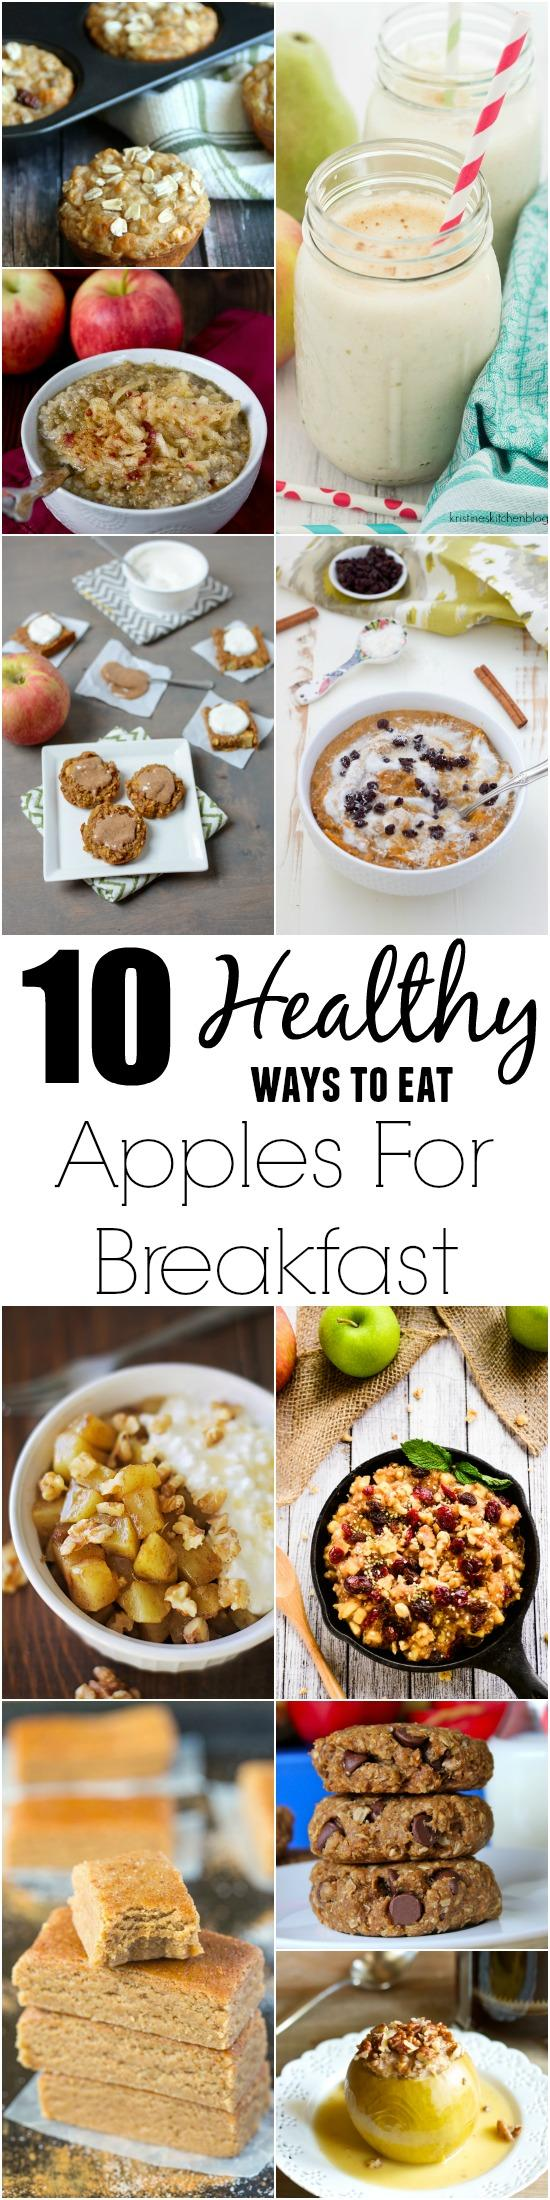 10 Healthy Ways To Eat Apples For Breakfast